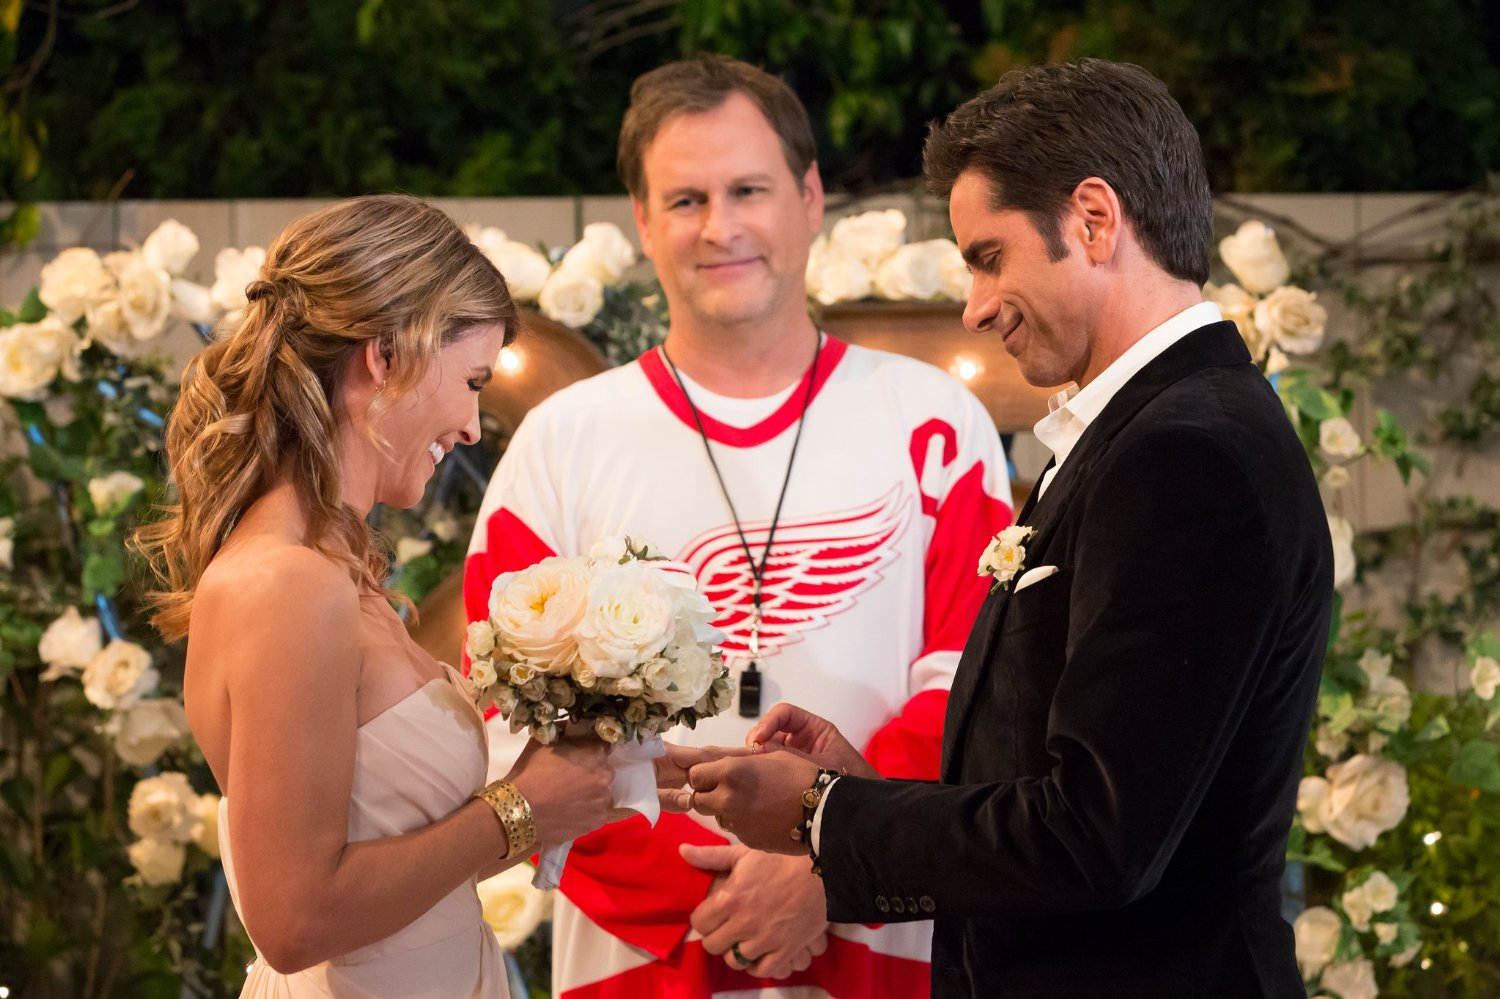 John_Stamos_Dave_Coulier_and_Lori_Loughlin_in_Fuller